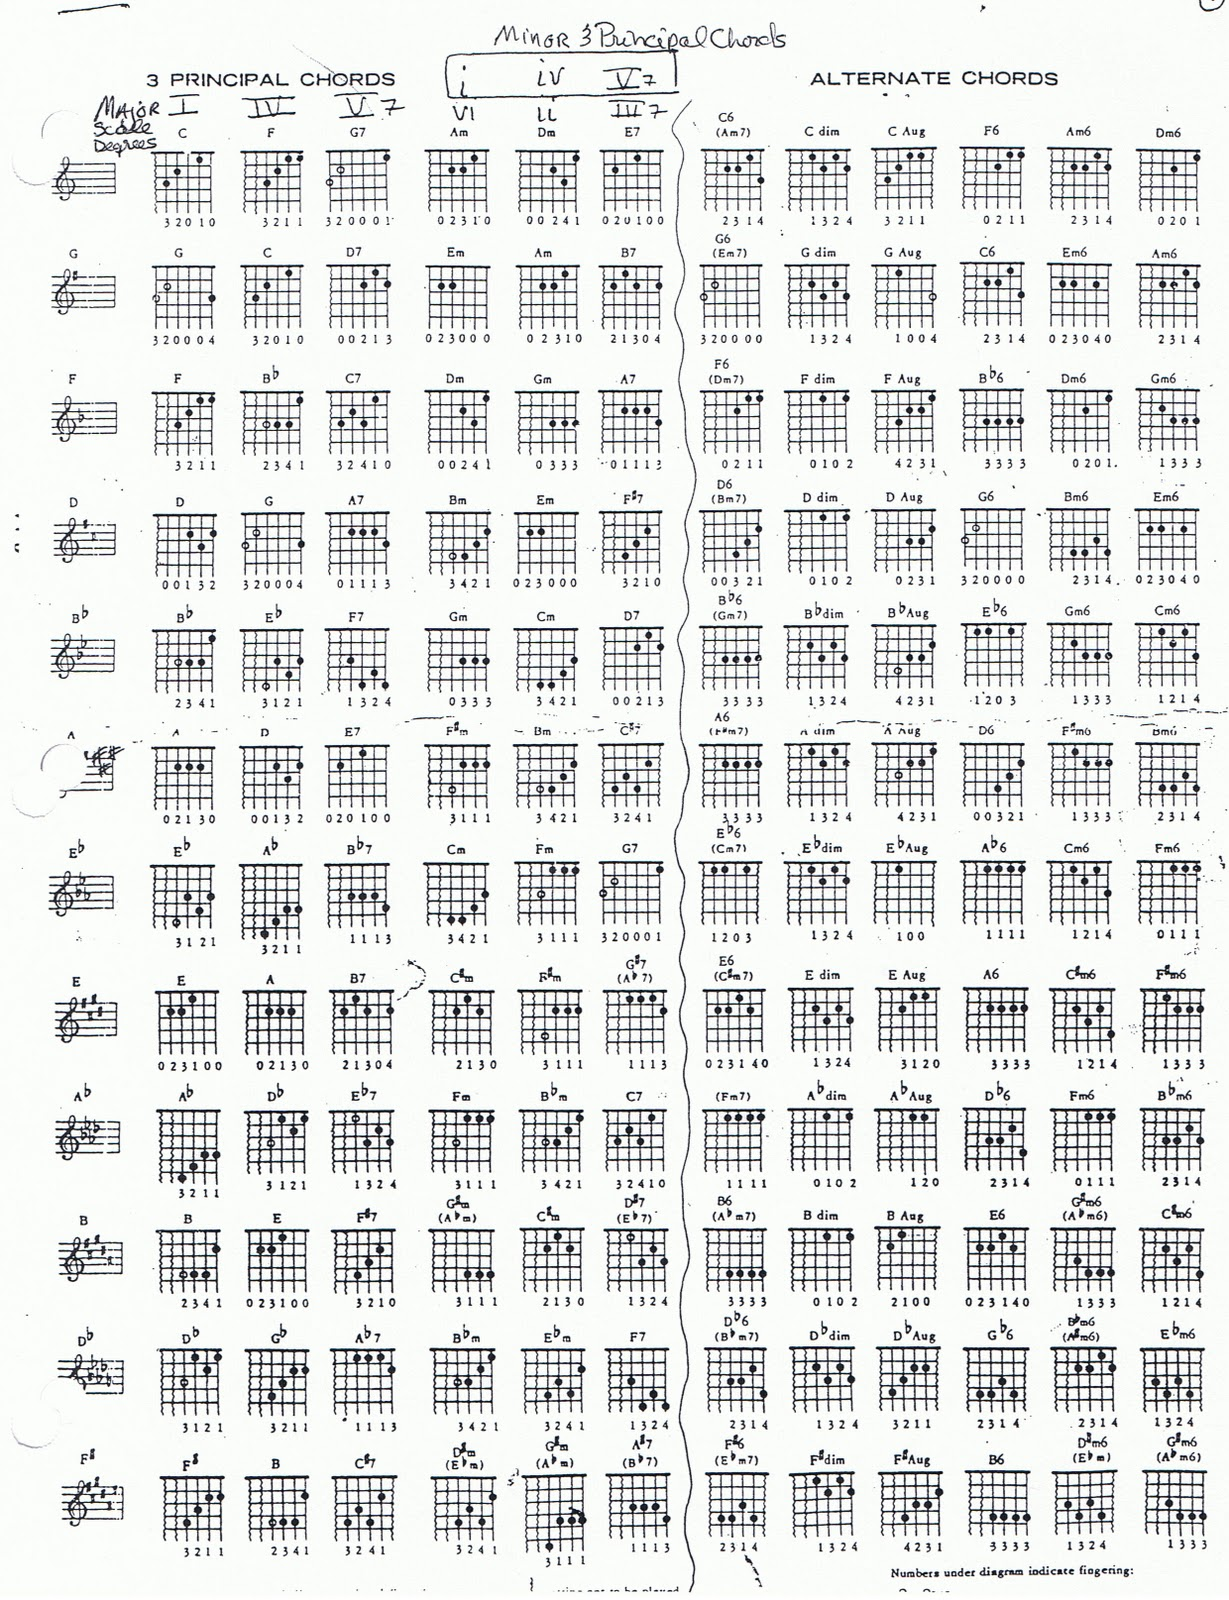 Jazz guitar chords. : Musicality : Pinterest : Jazz Guitar Chords, Guitar Chords and Jazz